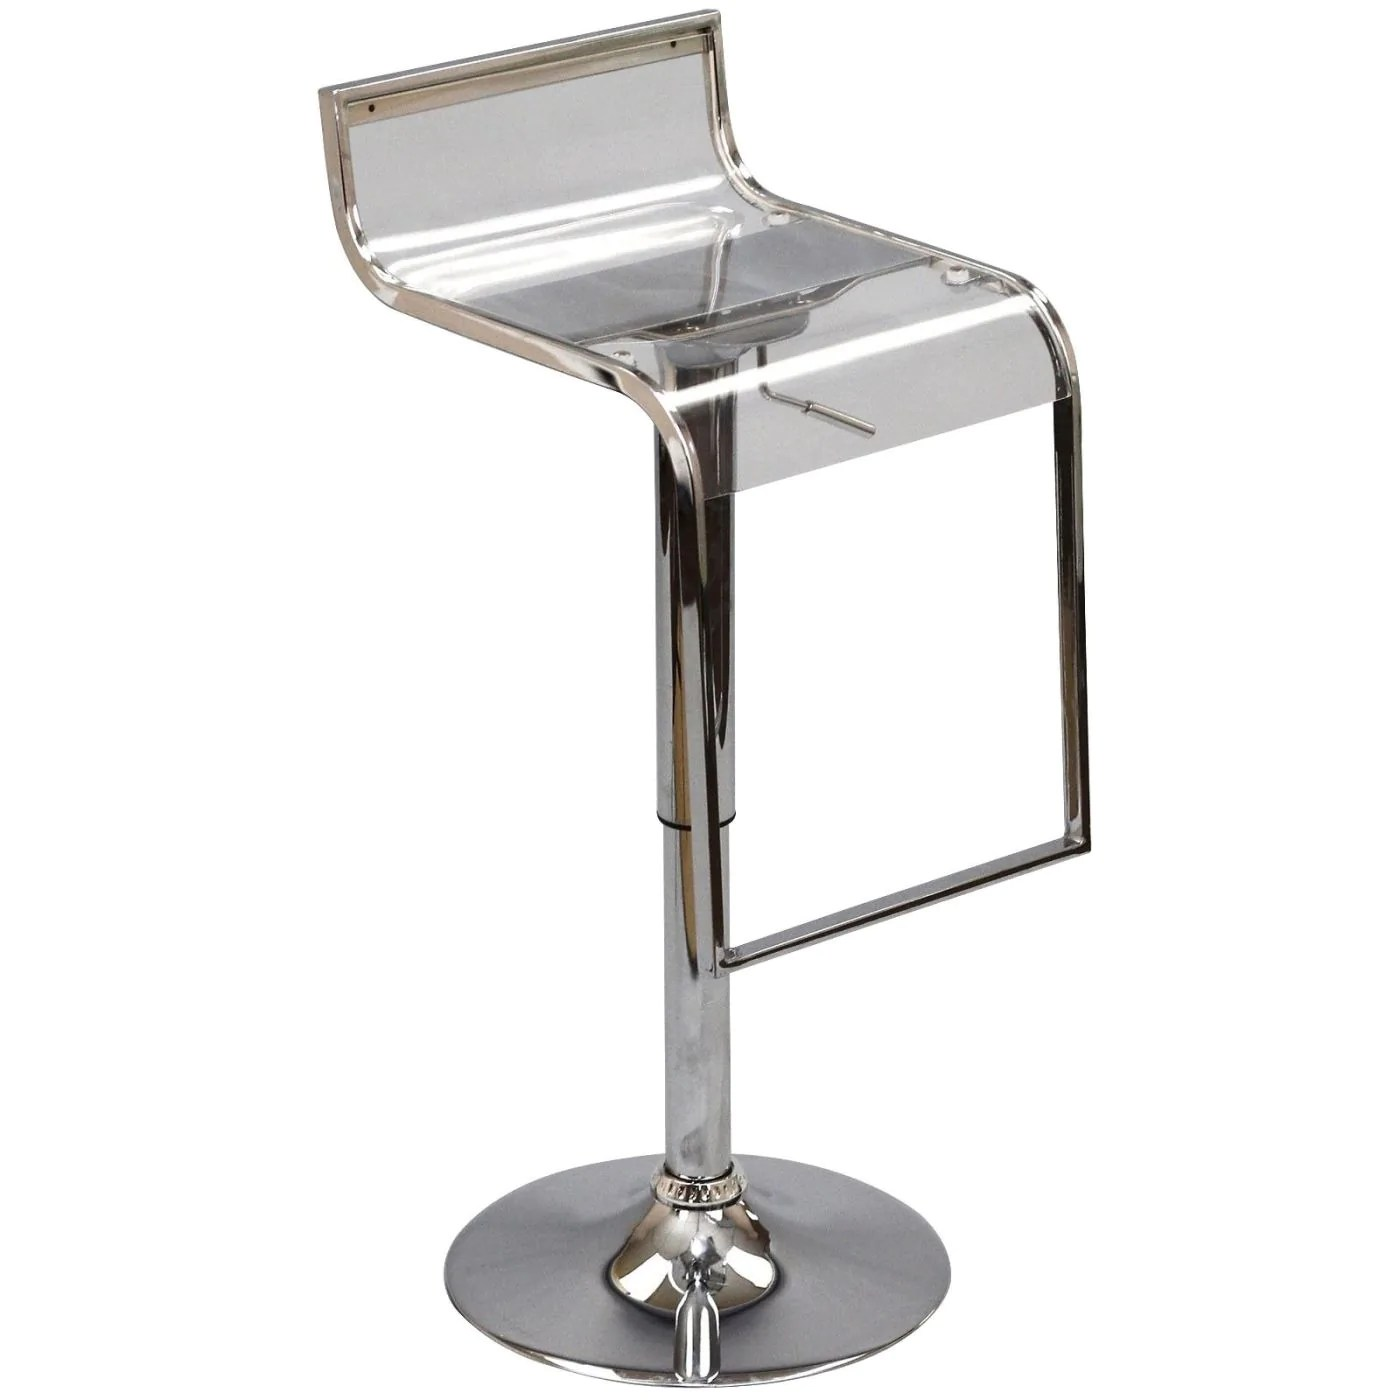 Bar Stools For Sale Modway Bar Chairs On Sale Eei 535 Clr Lem Acrylic Bar Stool Only Only 90 75 At Contemporary Furniture Warehouse